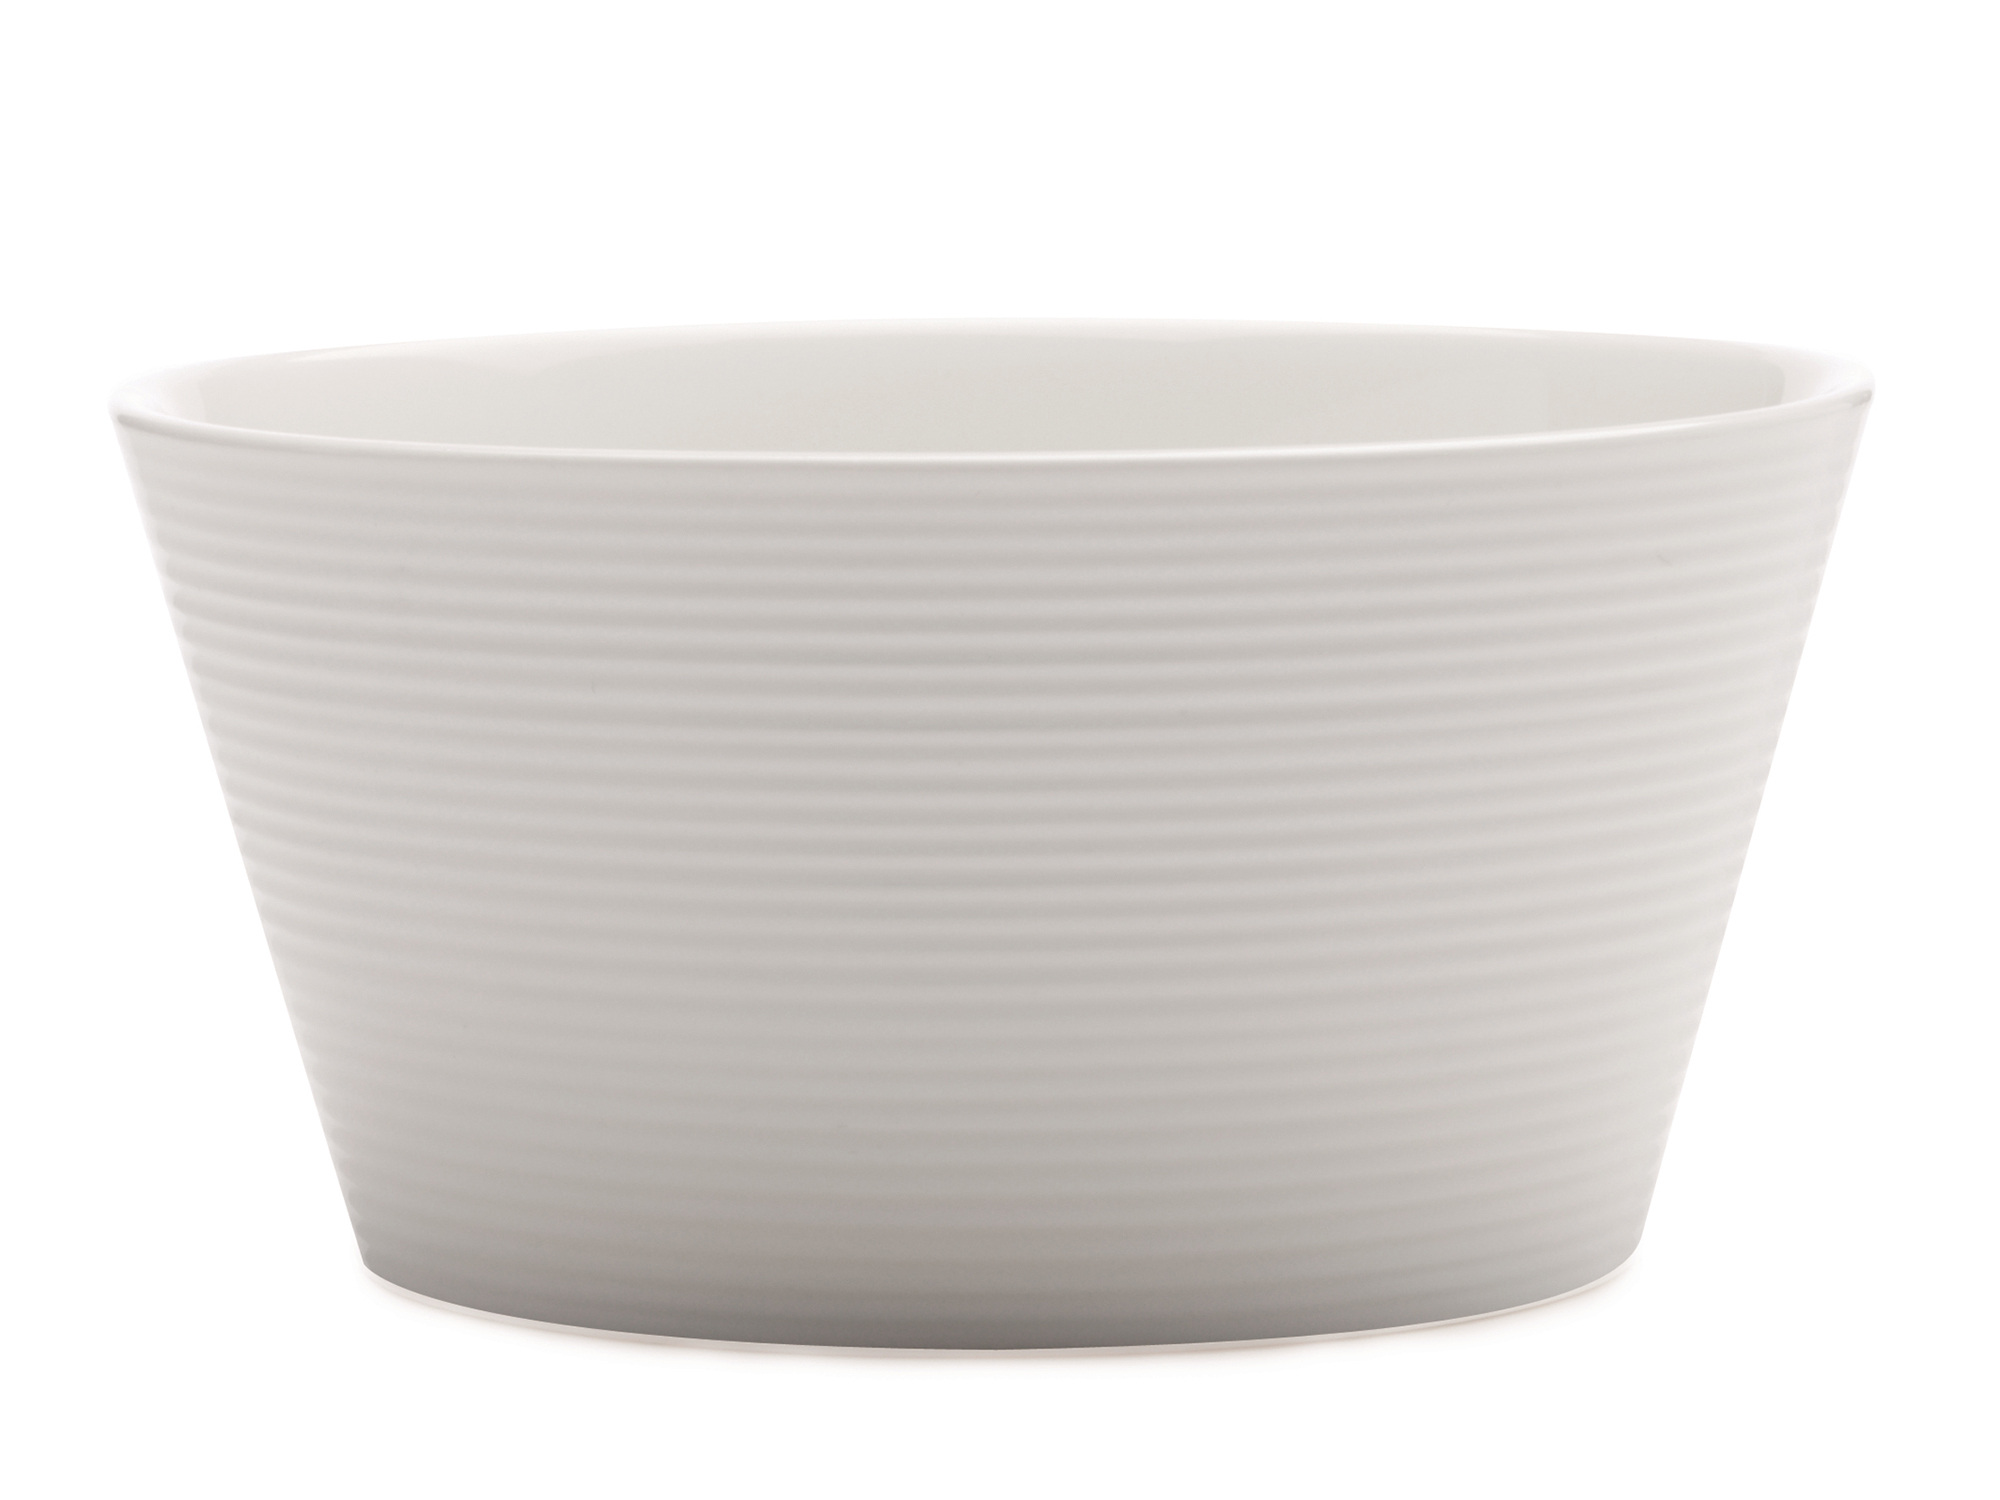 Casa Domani Casual White Evolve 10Cm Conical Bowl